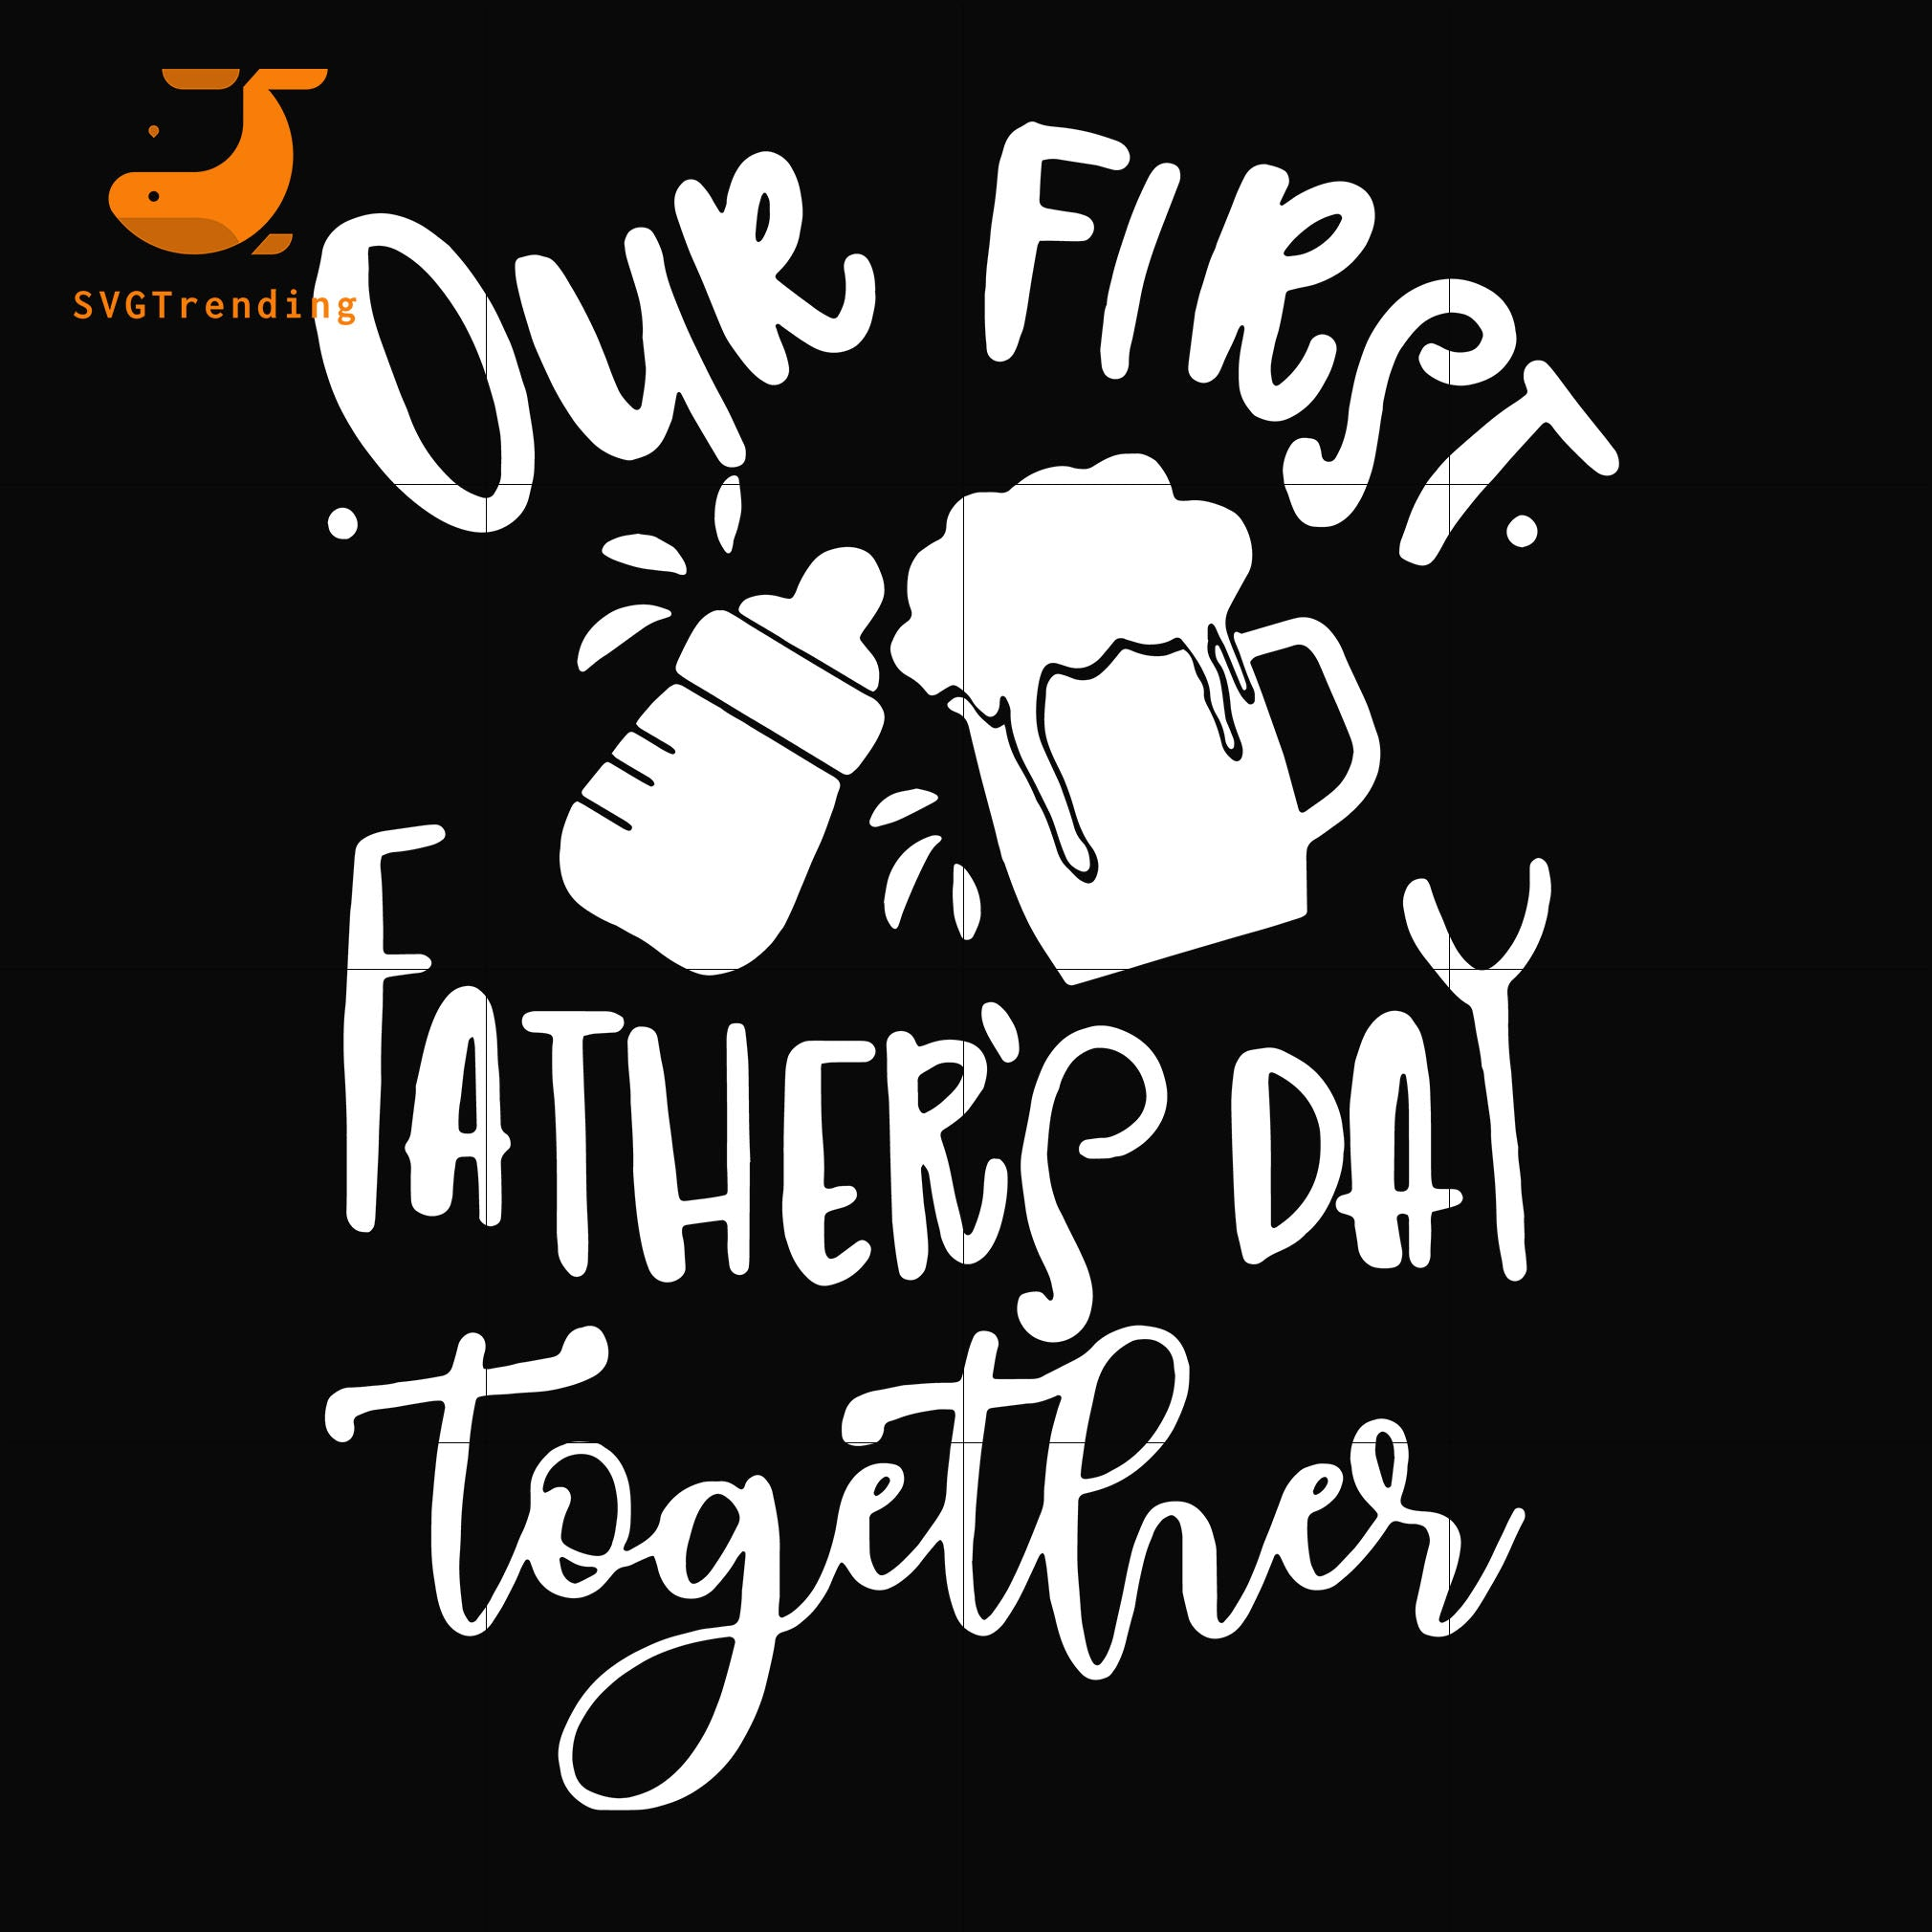 Our first Father day together svg, png, dxf, eps, digital file FTD150